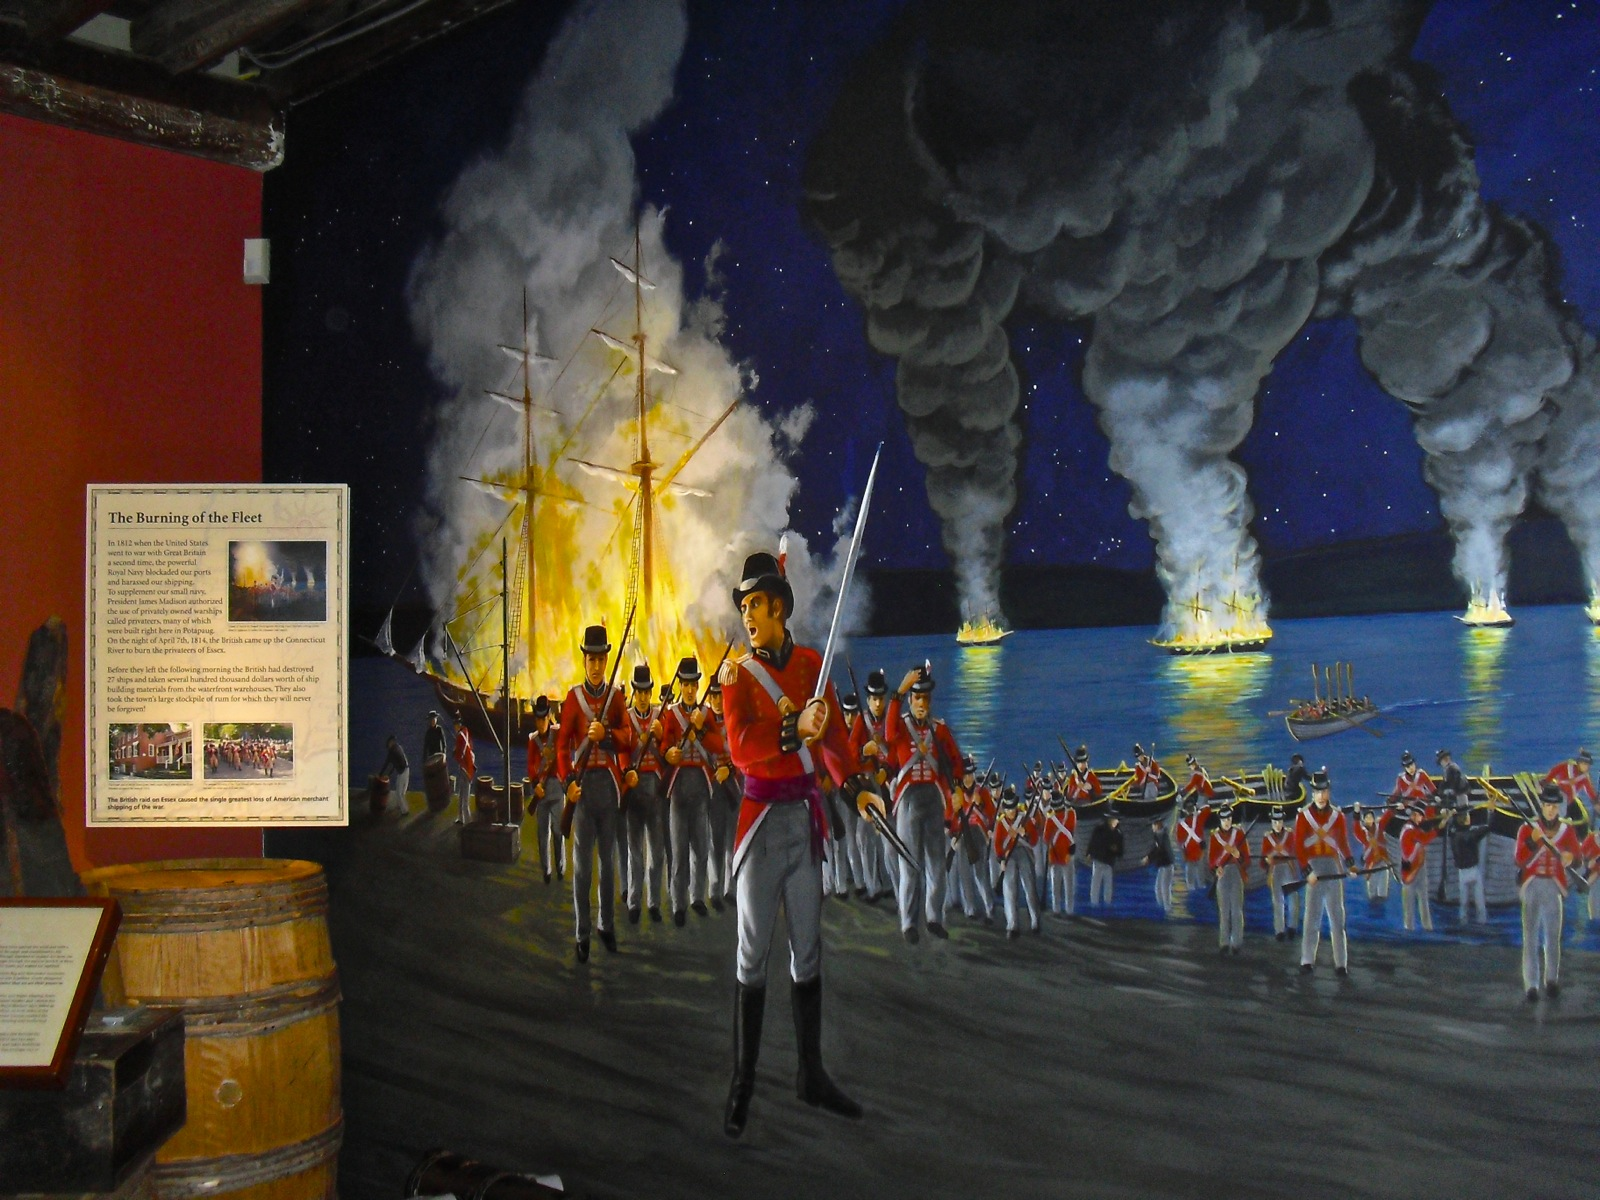 Essex Burning of the Fleet exhibit at Connecticut River Museum - Essex CT #CTVisit @GetawayMavens